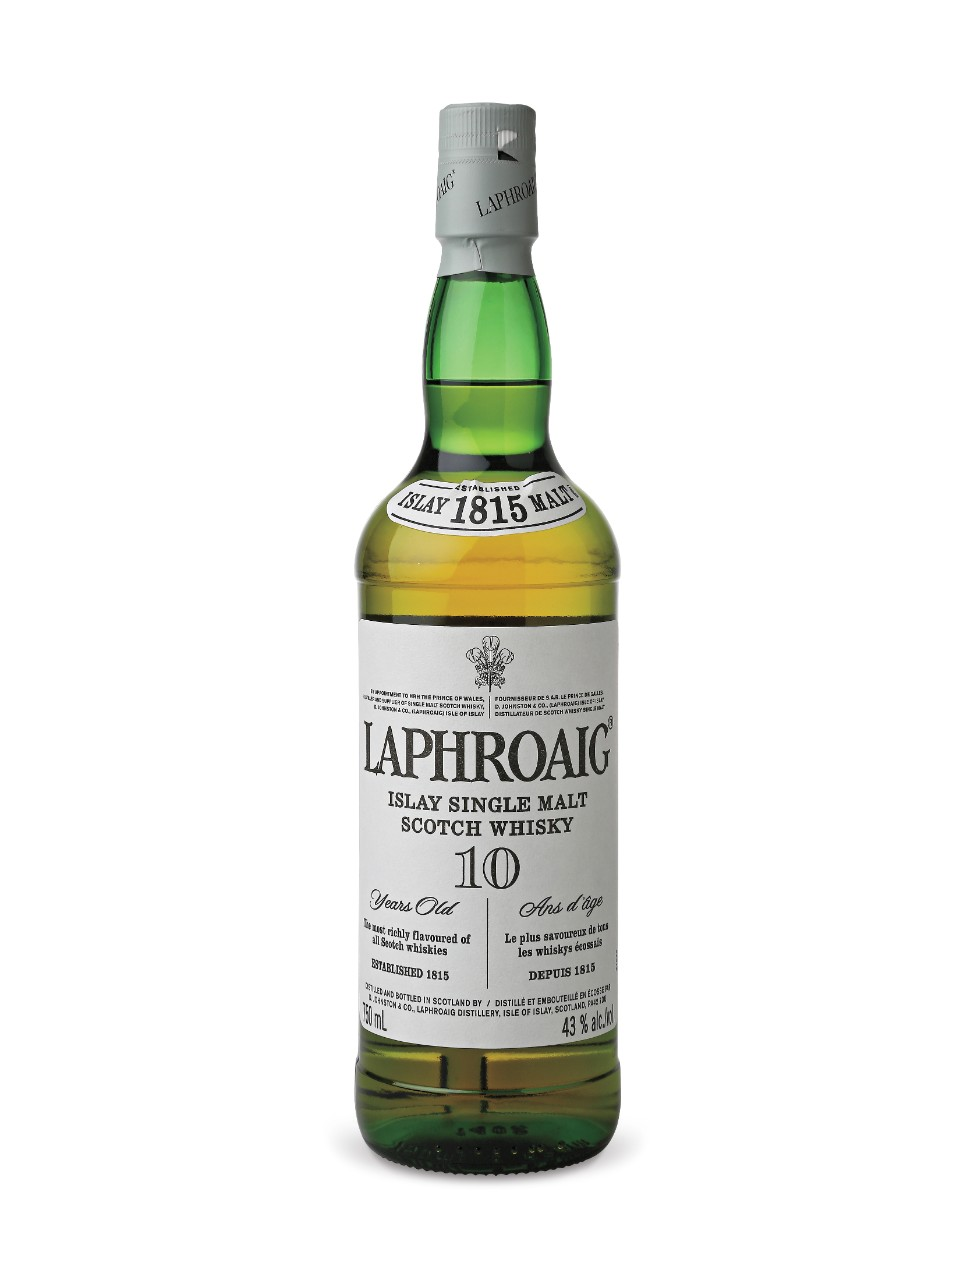 Laphroaig 10 Year Old Islay Single Malt Scotch Whisky from LCBO